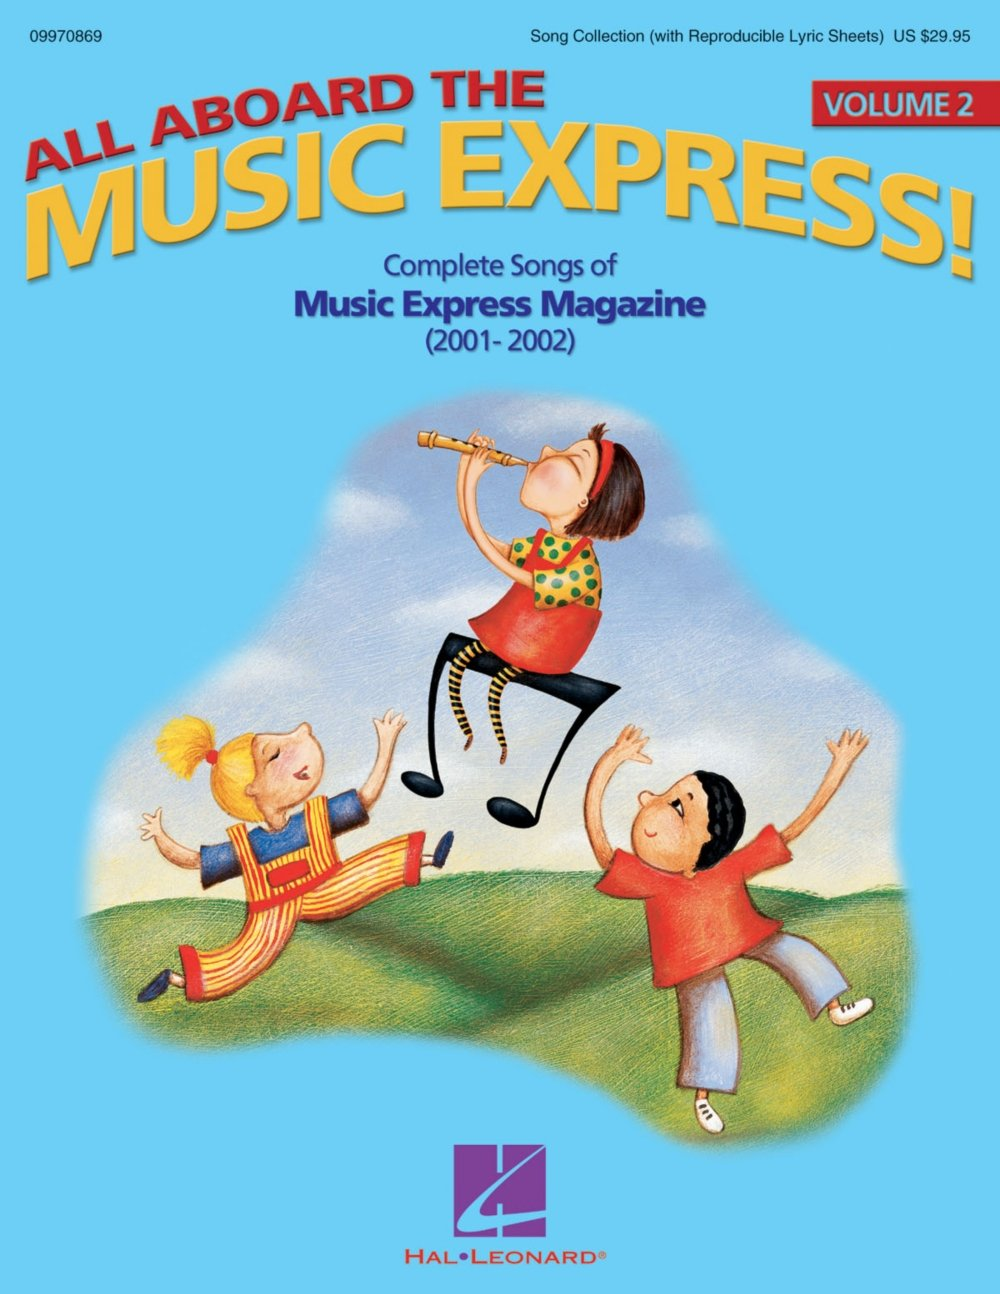 Hal Leonard All Aboard the Music Express Vol. 2 (Complete Songs of Music Express Magazine 2001-2002) ShowTrax CD pdf